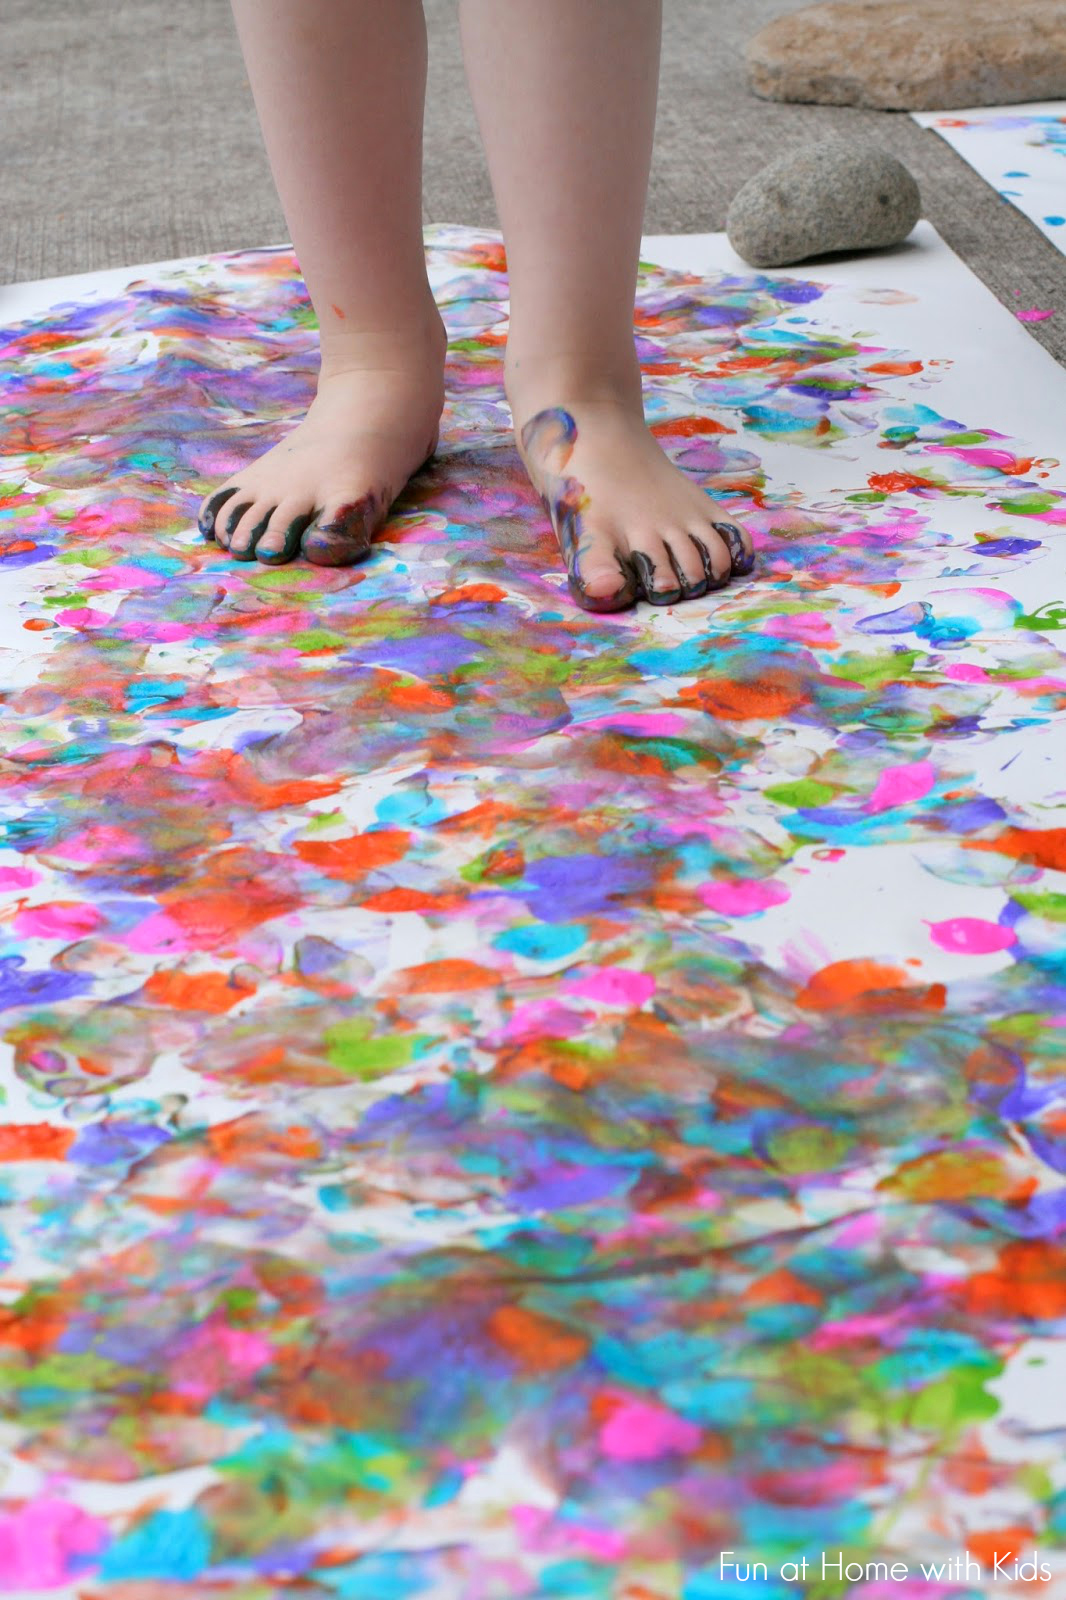 big art painting with your feet